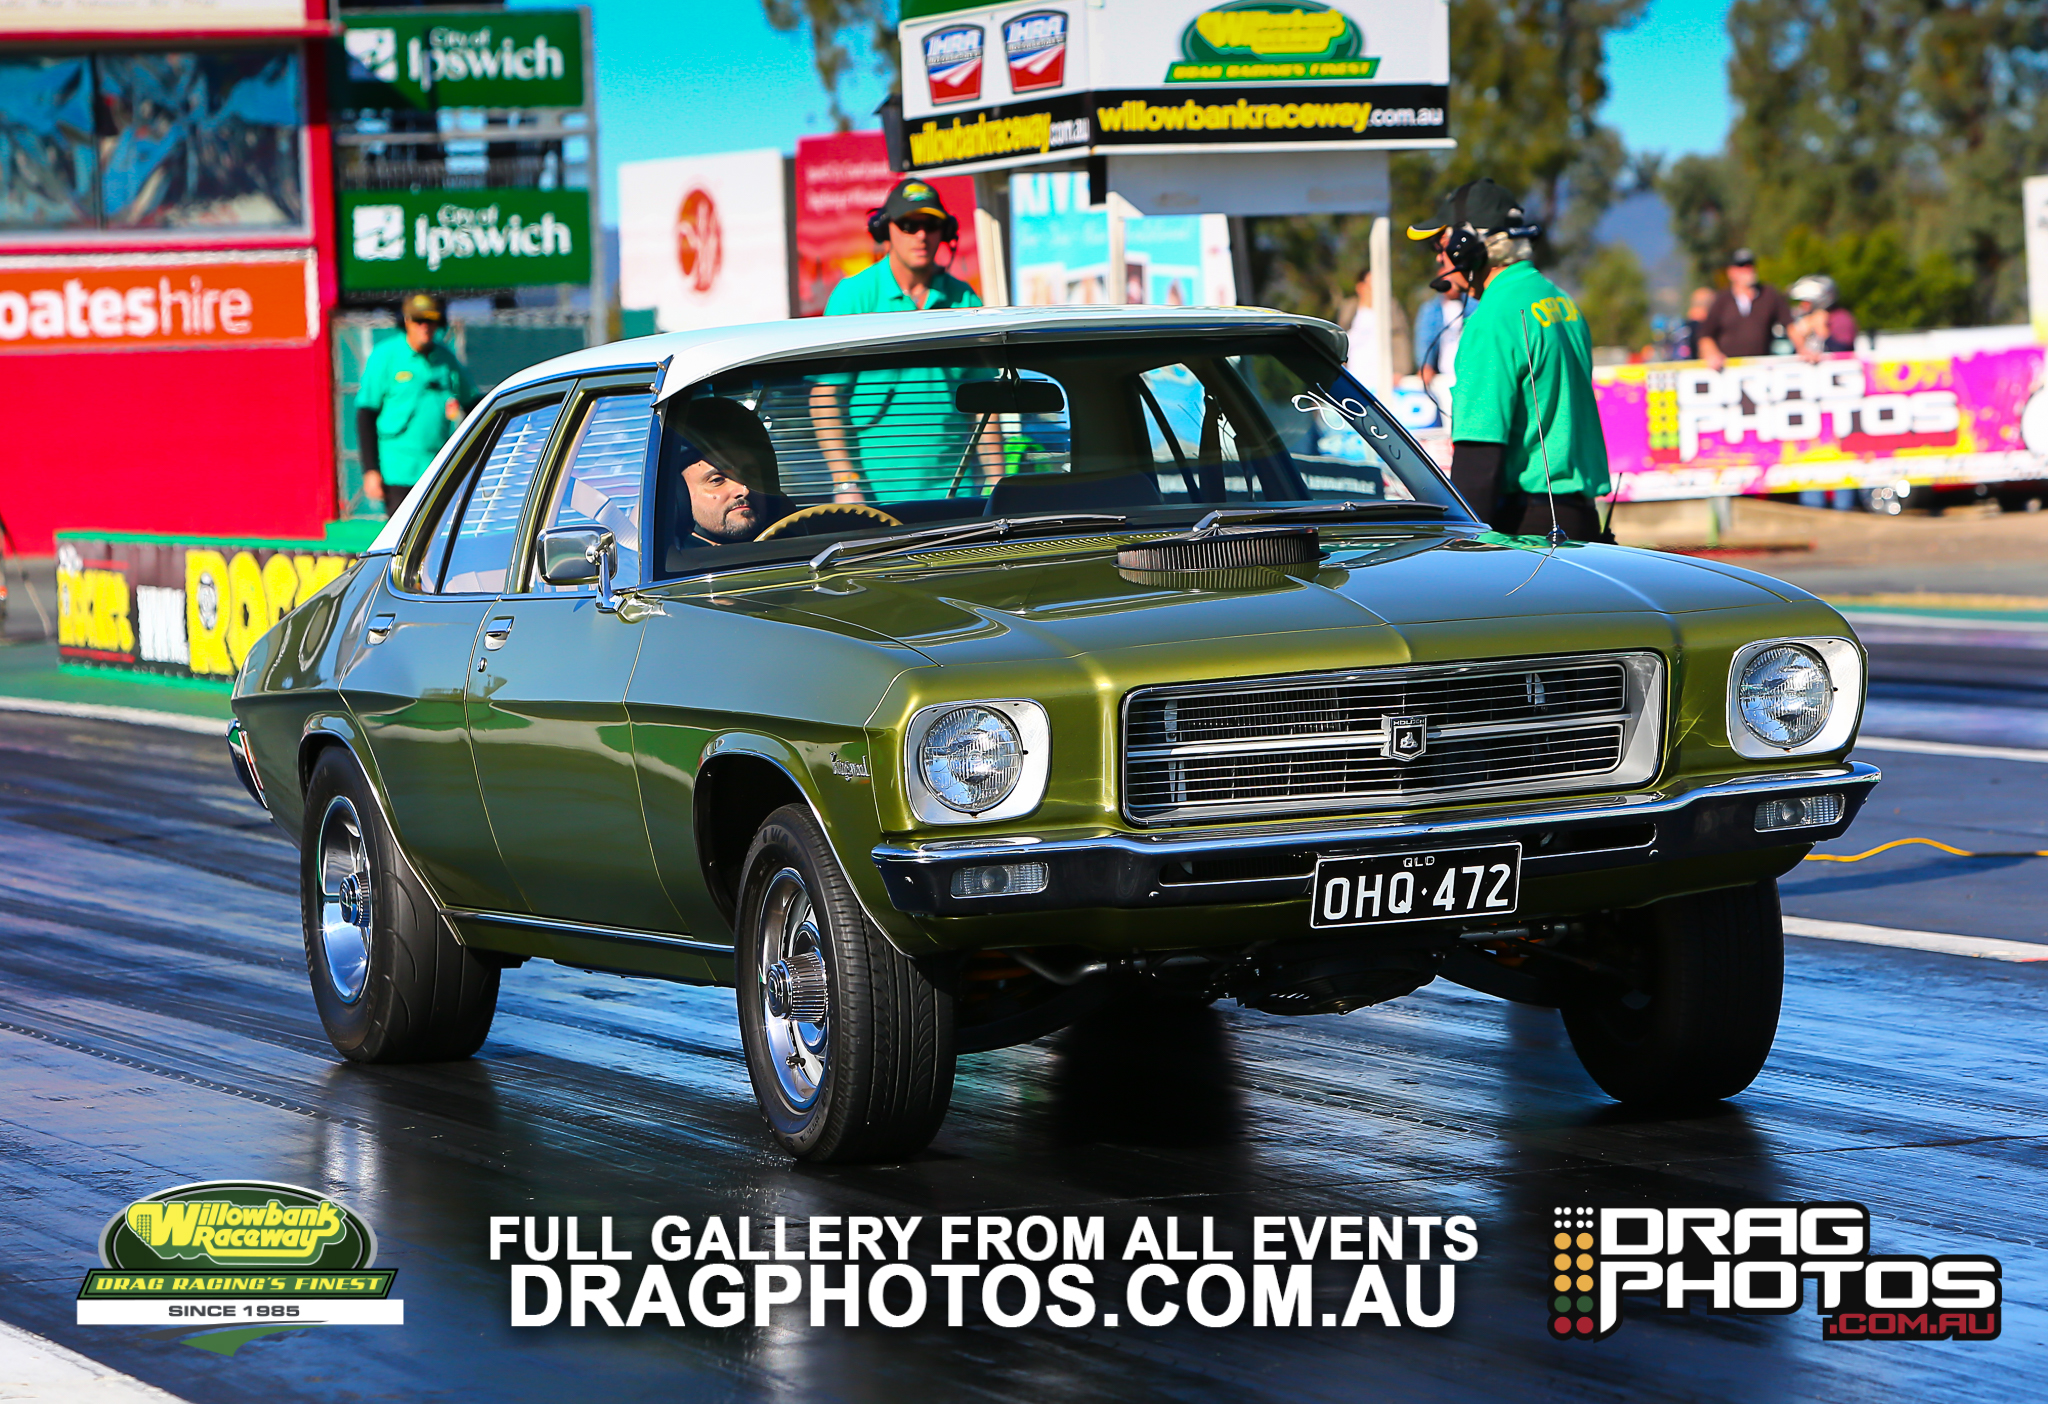 East Coast Muscle Car Club Hire Dragphotoscomau BoostCruising - Muscle car club